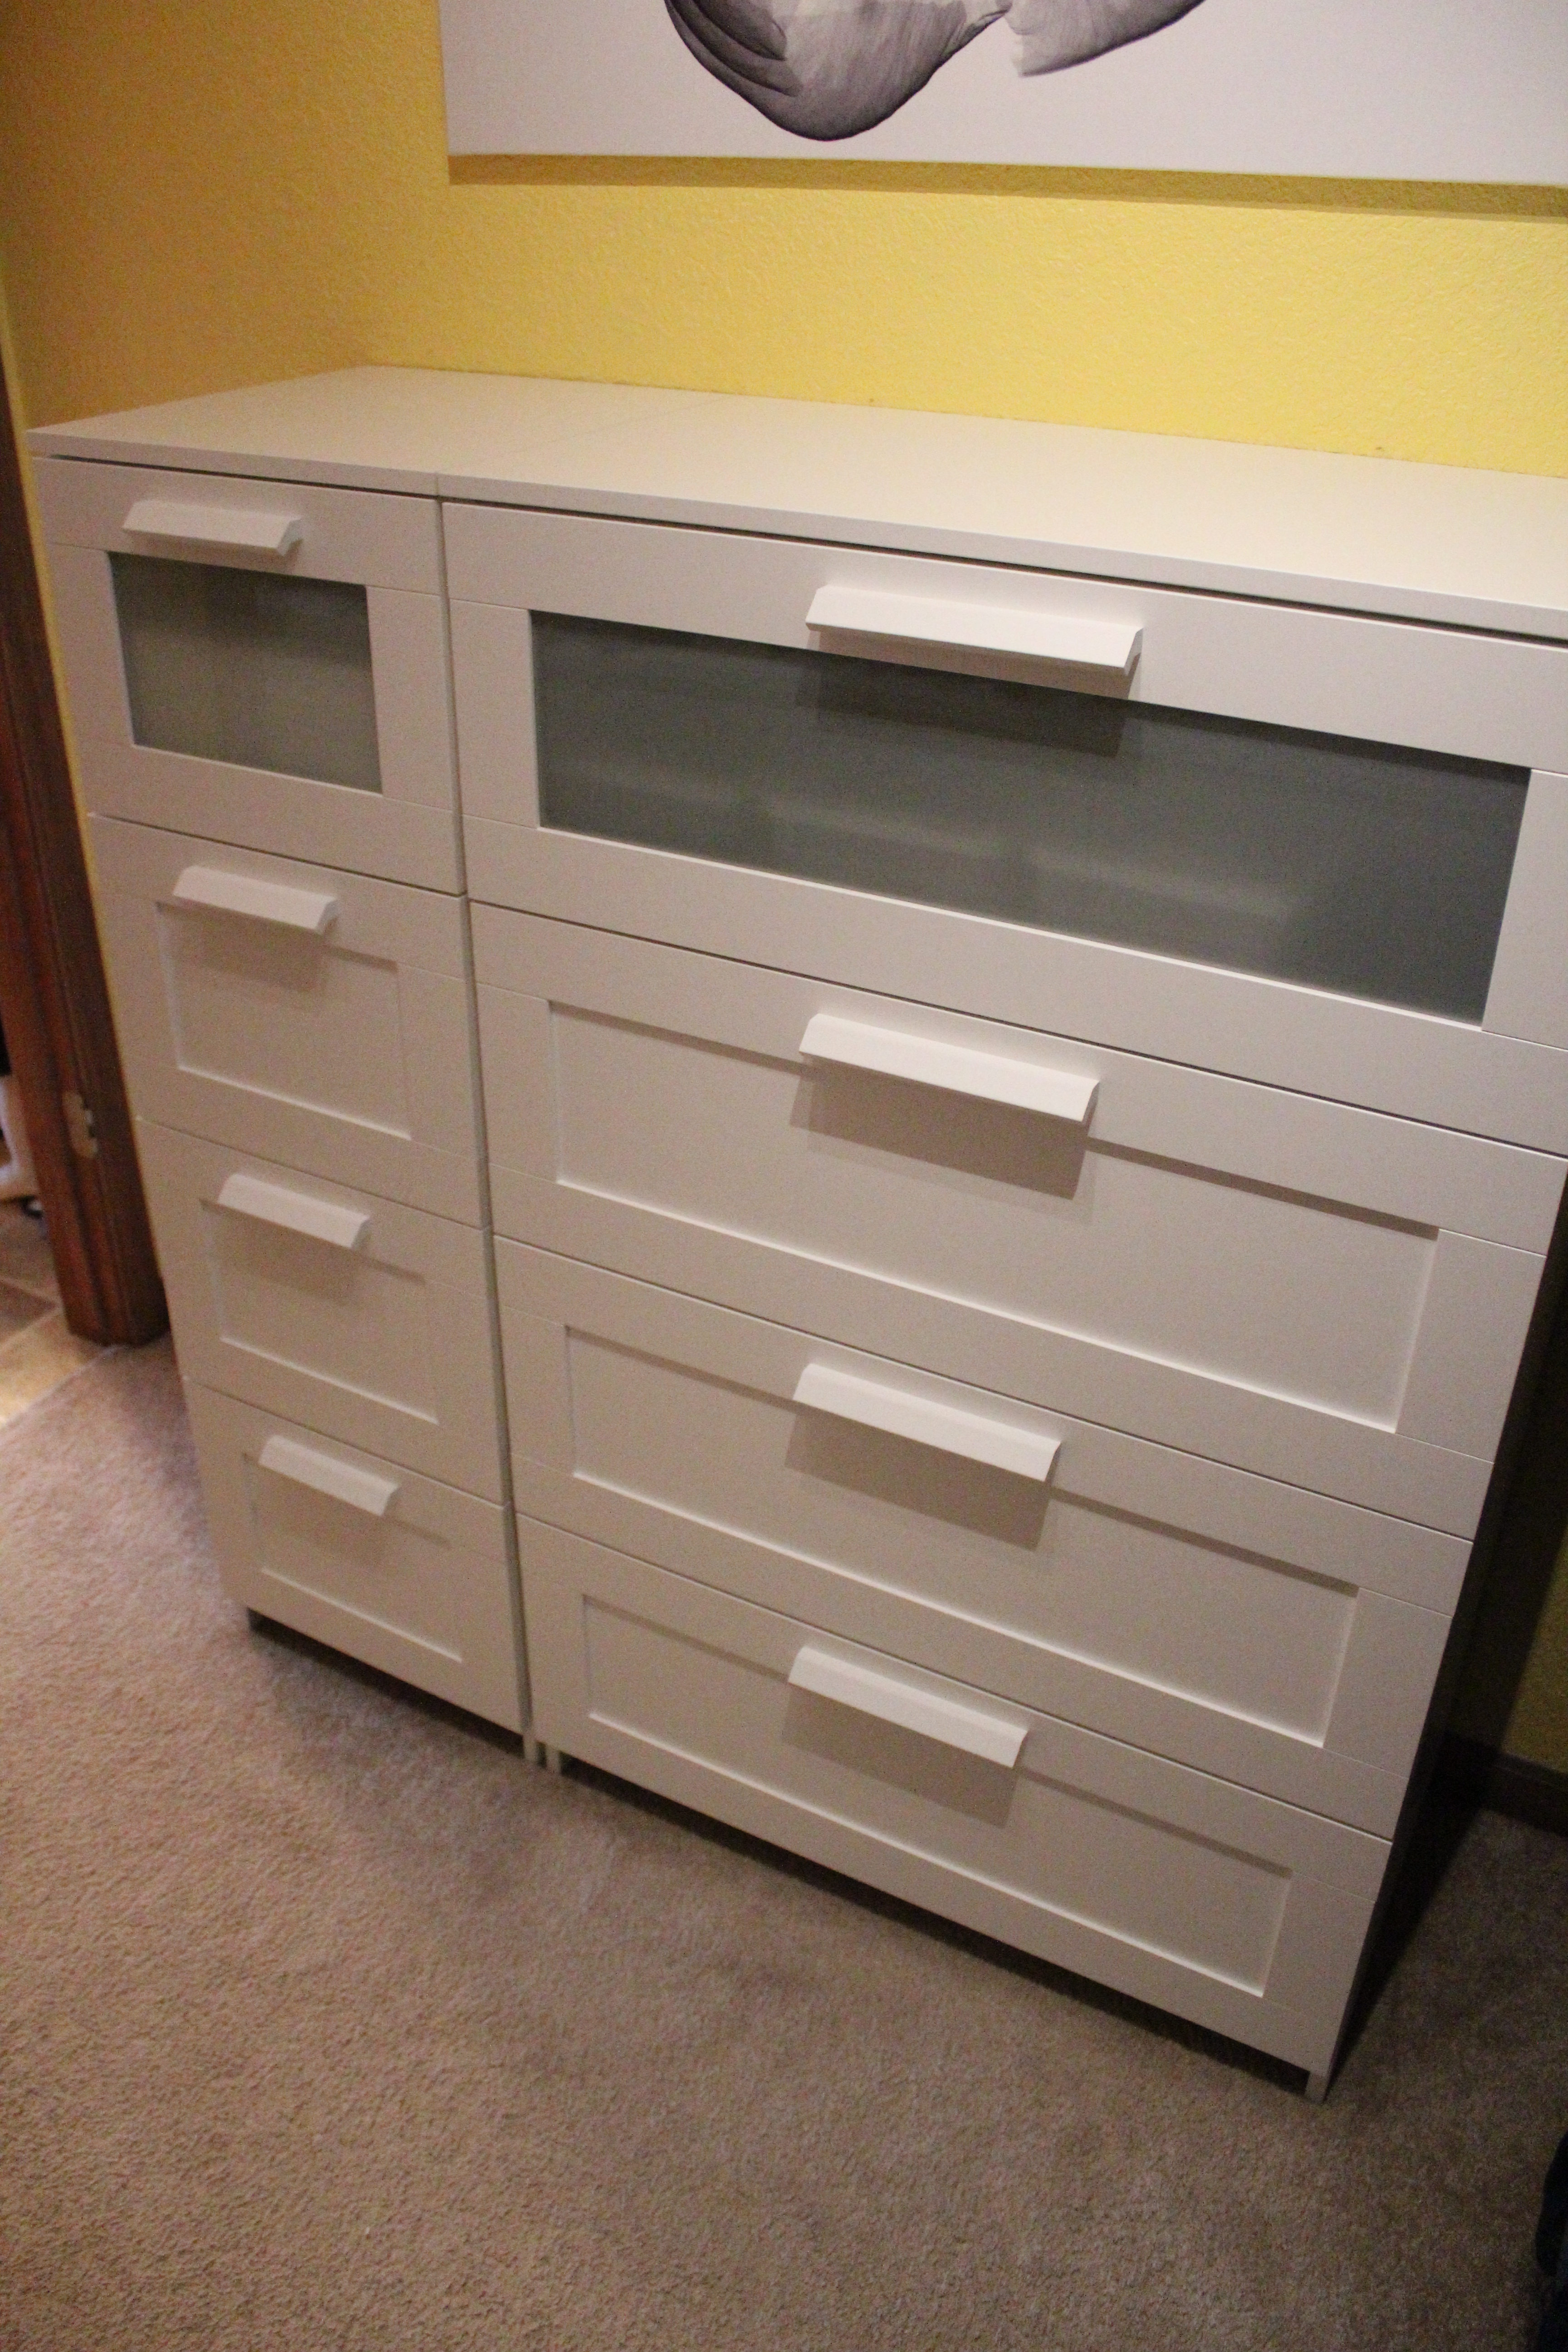 chest koppang walmart ebay ikea for mobilemonitors black with dresser home closet mesmerizing craigslist usa maid dimensions hemnes article of drawers shelving tag stain white drawer